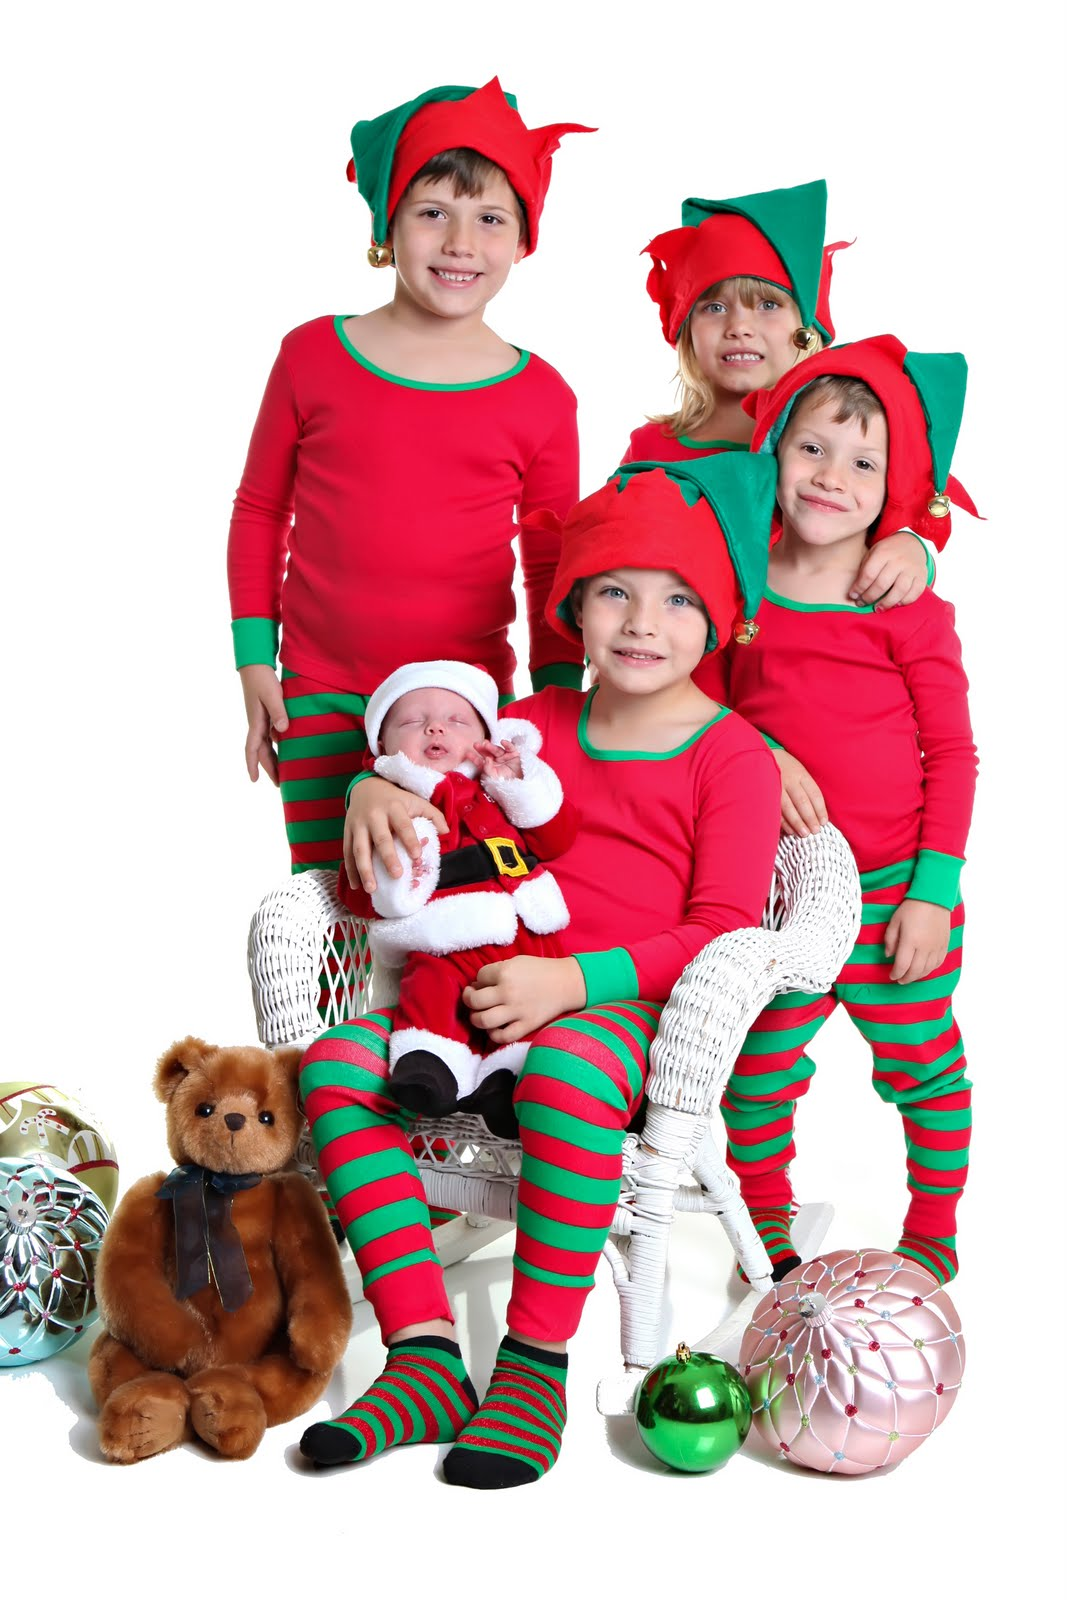 Artistic Images Photography Christmas Elves